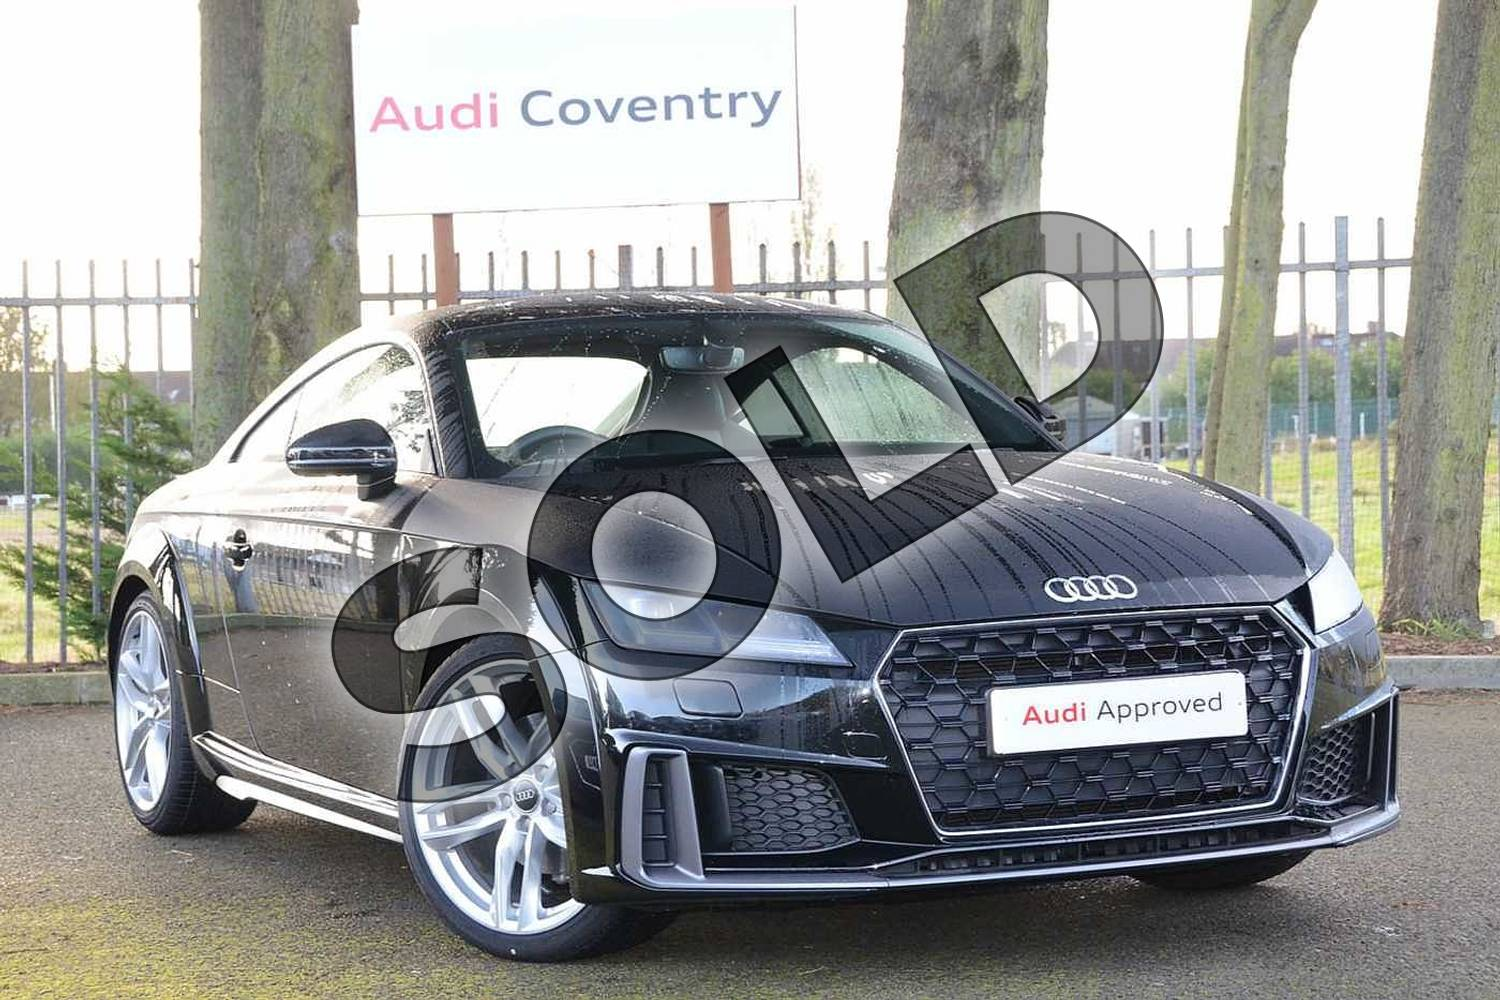 2019 Audi TT Coupe 40 TFSI S Line 2dr S Tronic in Myth Black Metallic at Coventry Audi